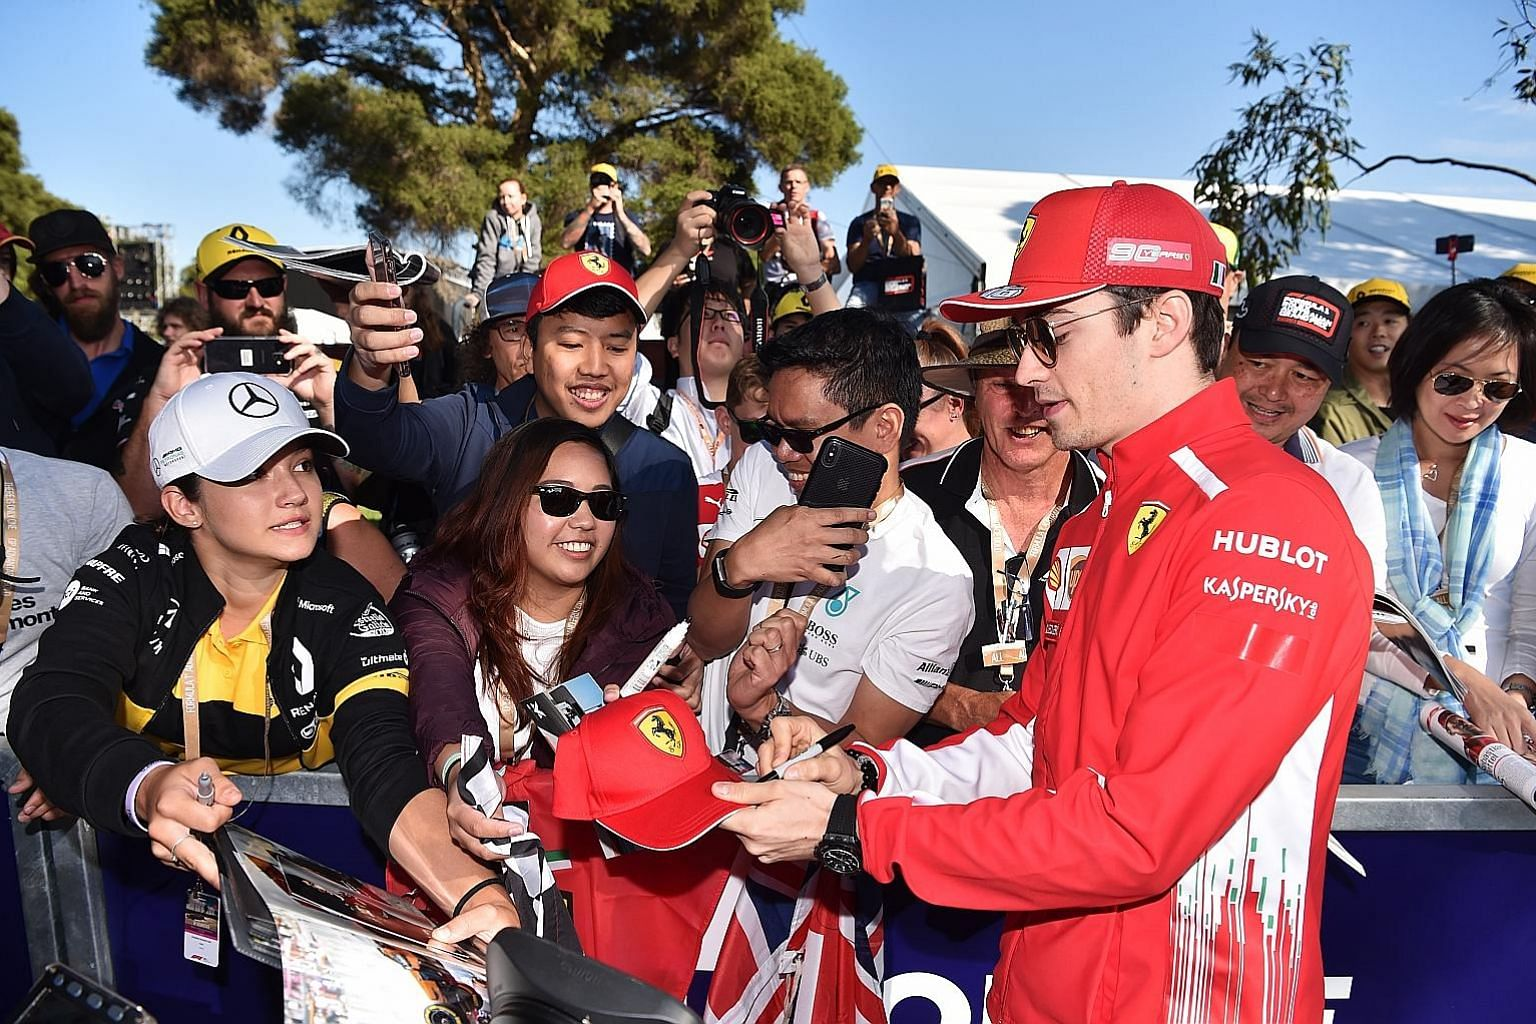 New Ferrari driver Charles Leclerc signing an autograph as he arrives at the Albert Park Grand Prix Circuit in Melbourne yesterday ahead of the season-opening Australian race.